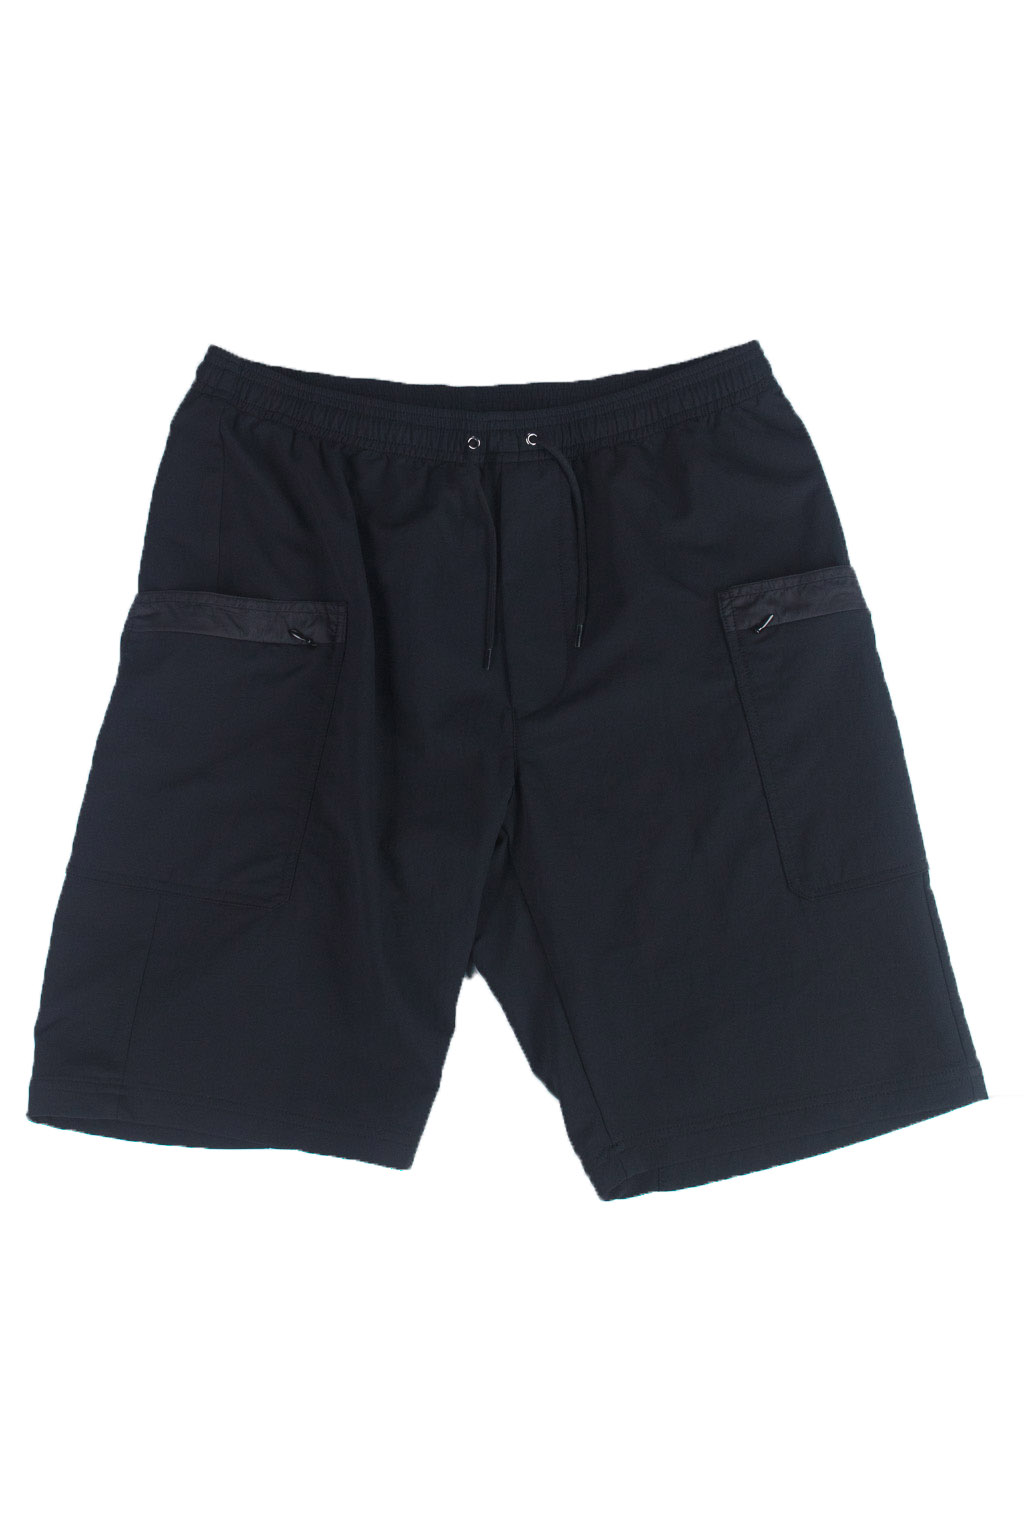 Alphadry Easy Shorts - Black